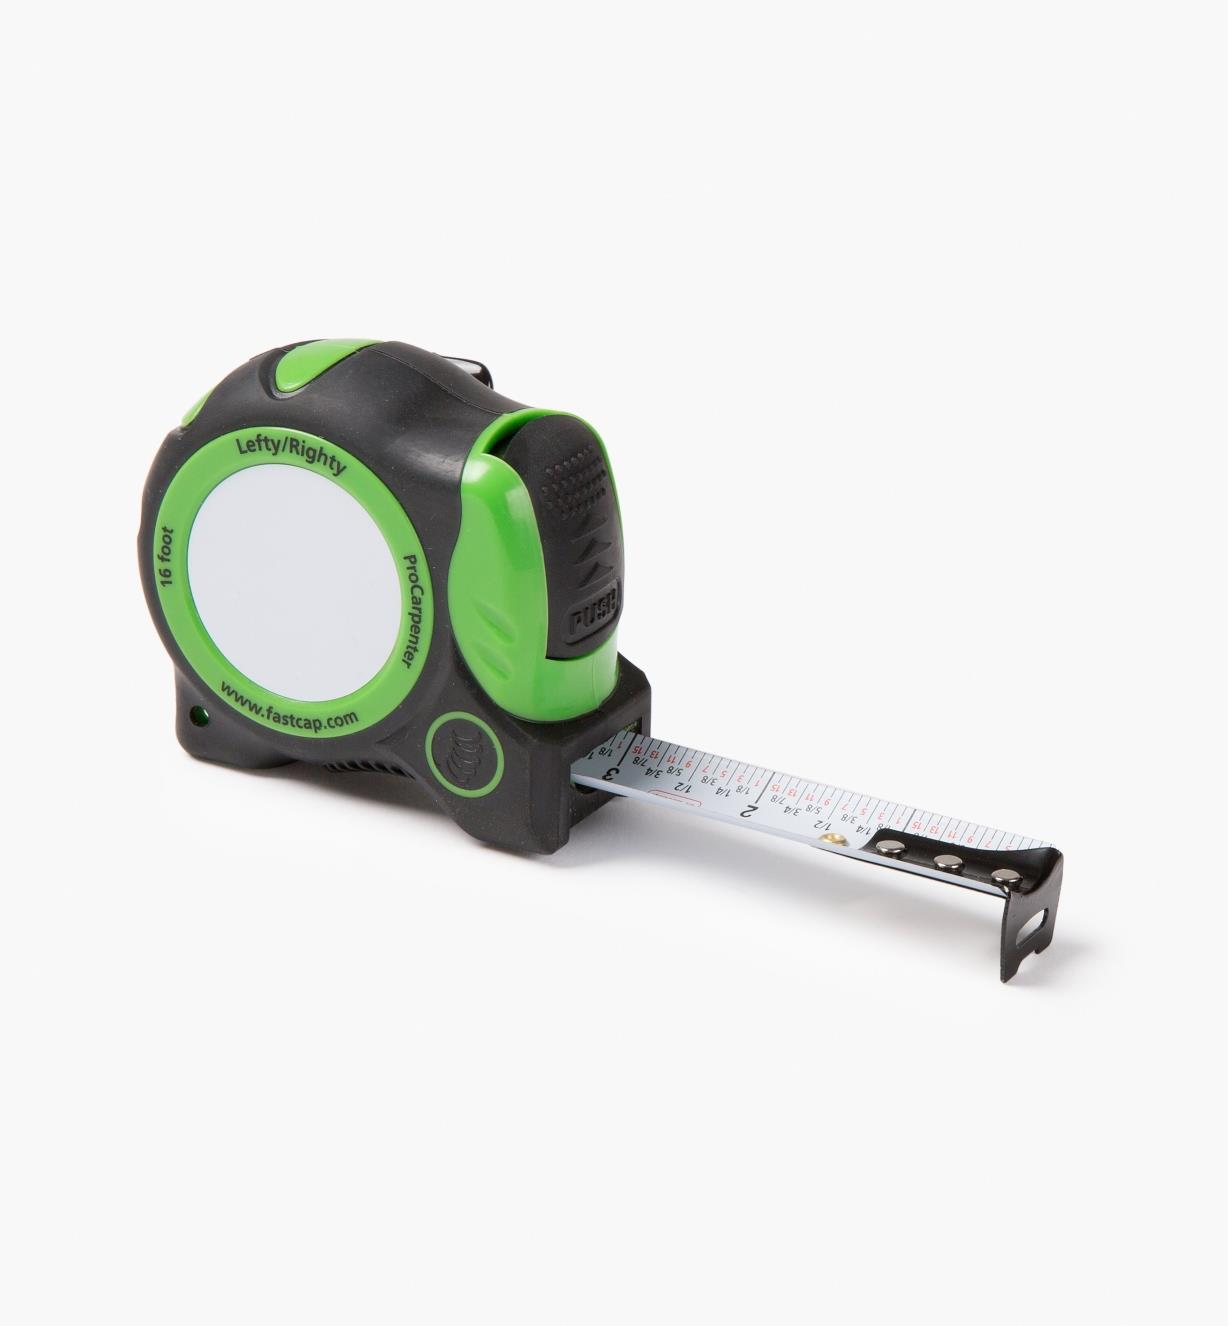 06K1141 - Righty/Lefty Auto-Lock Write-On Measuring Tape